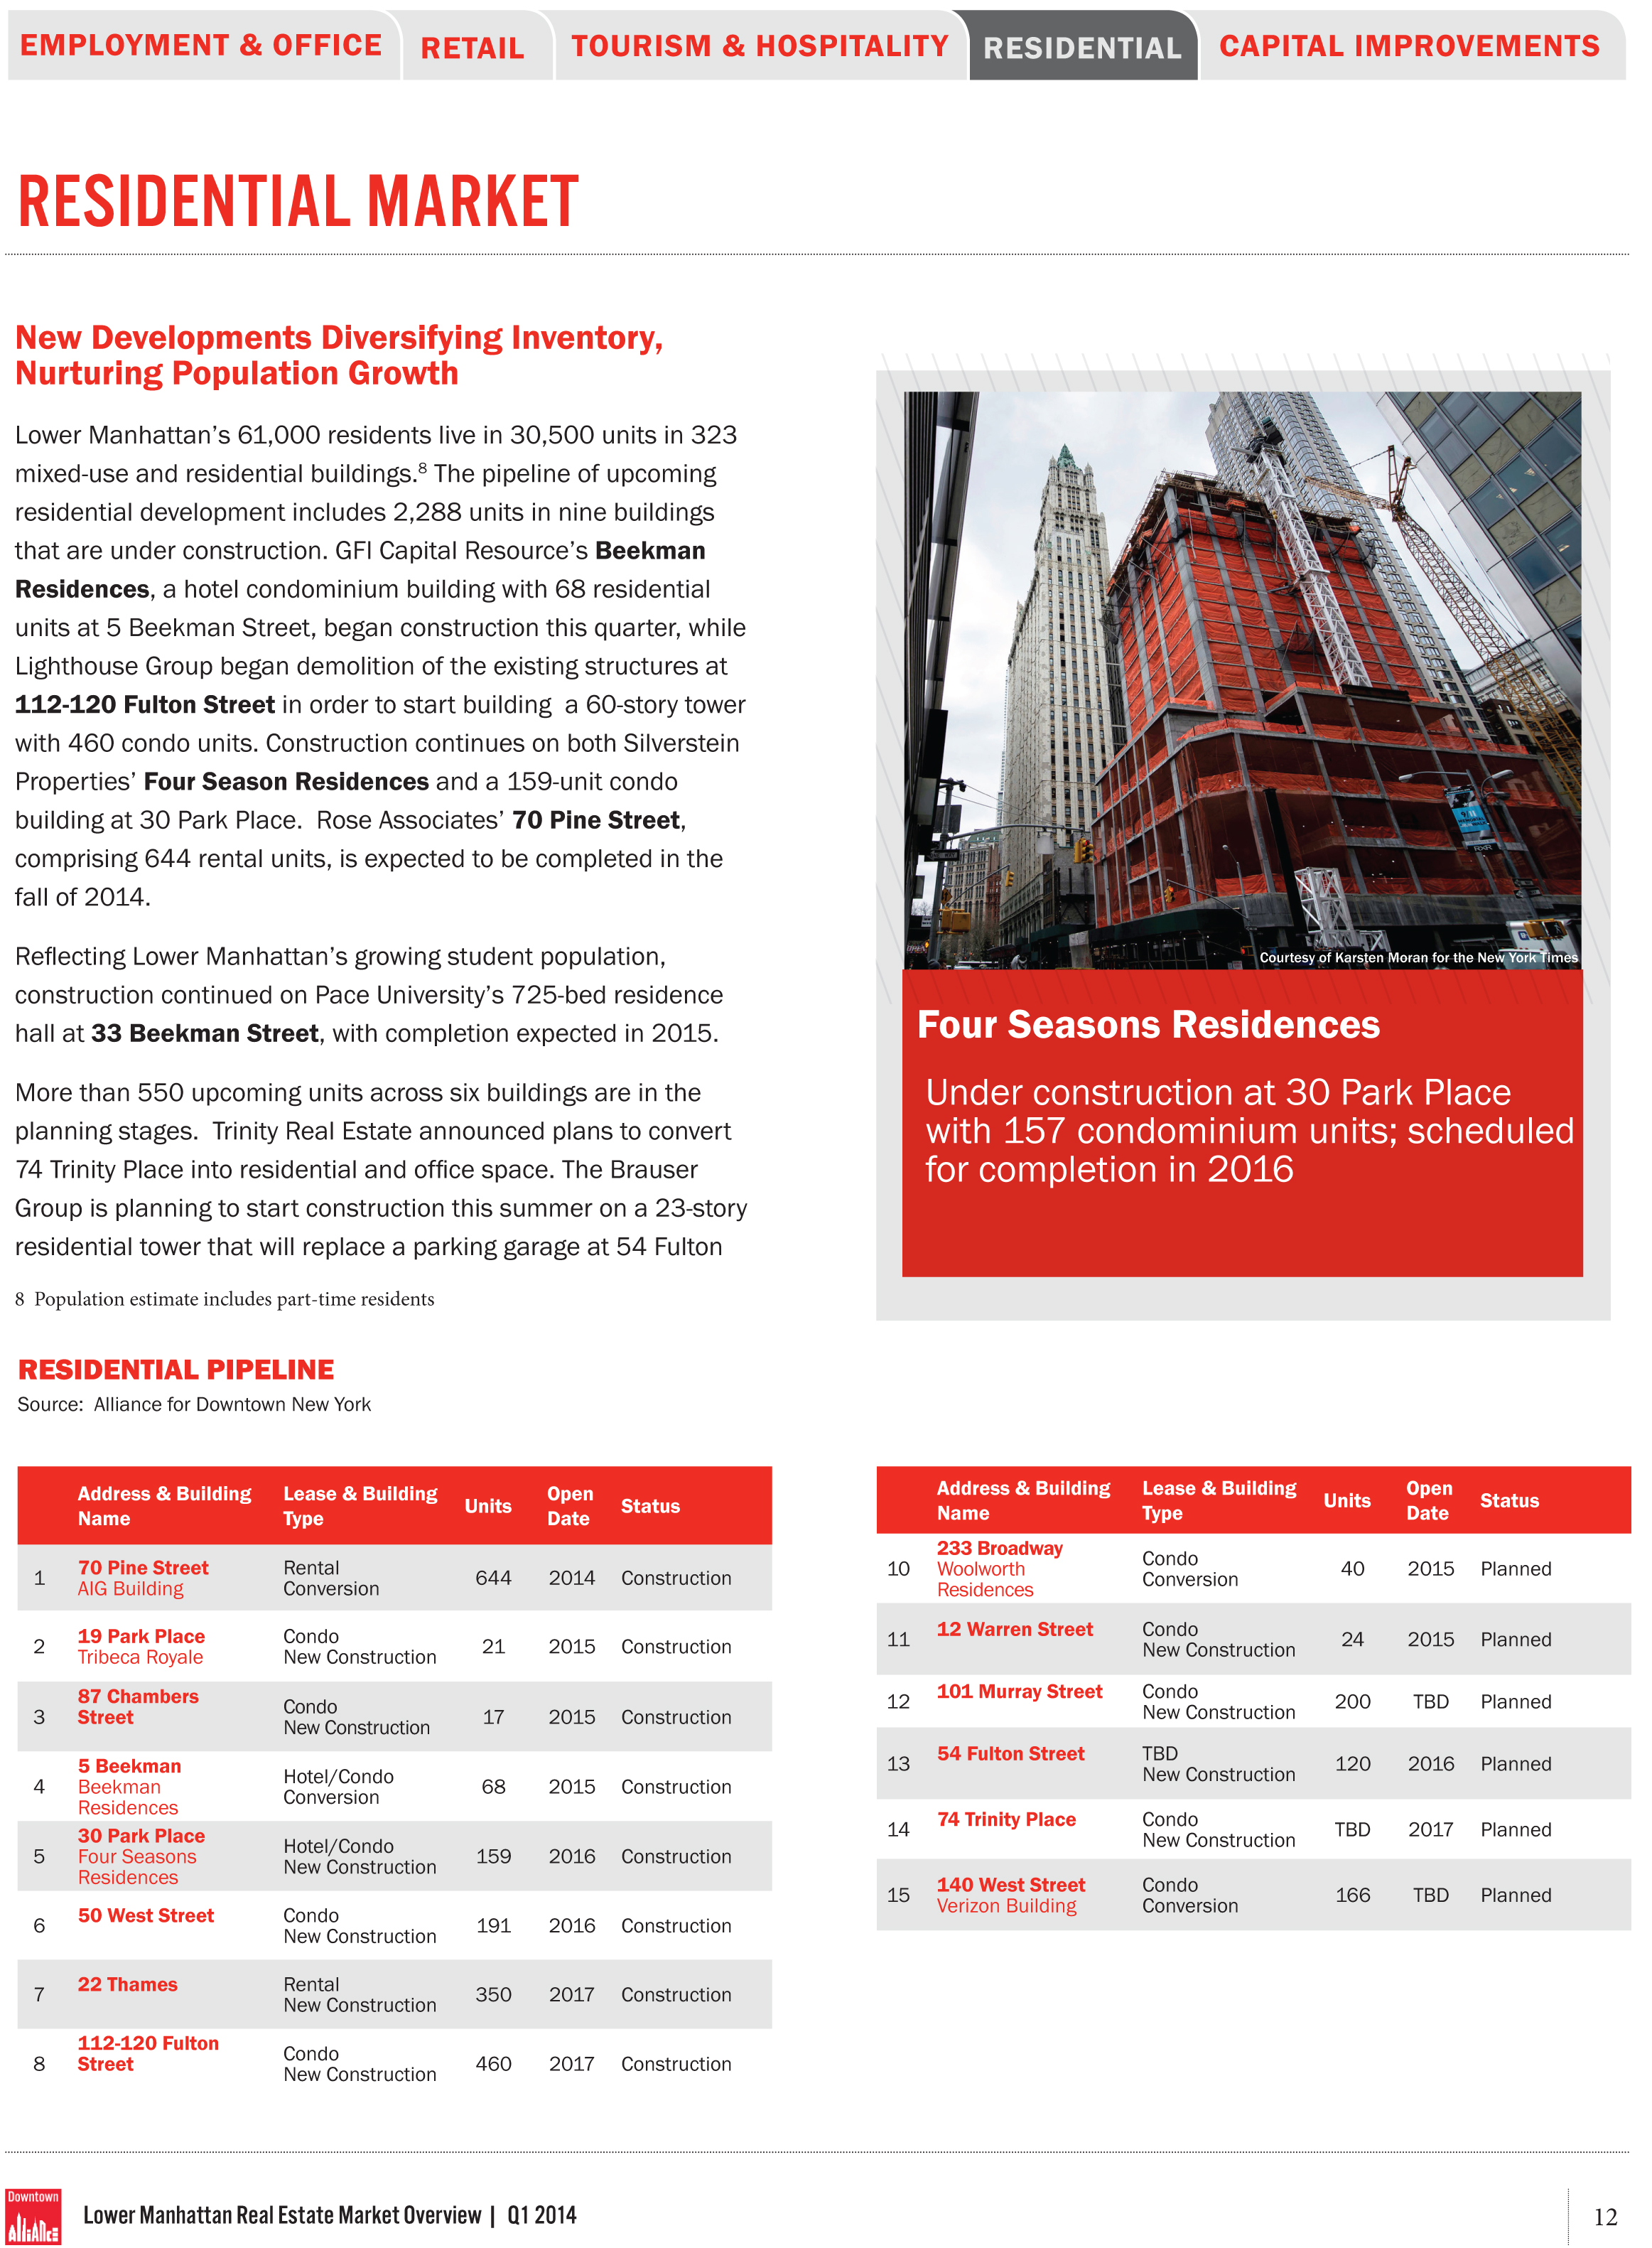 LM-Real-Estate-4Q2014-12